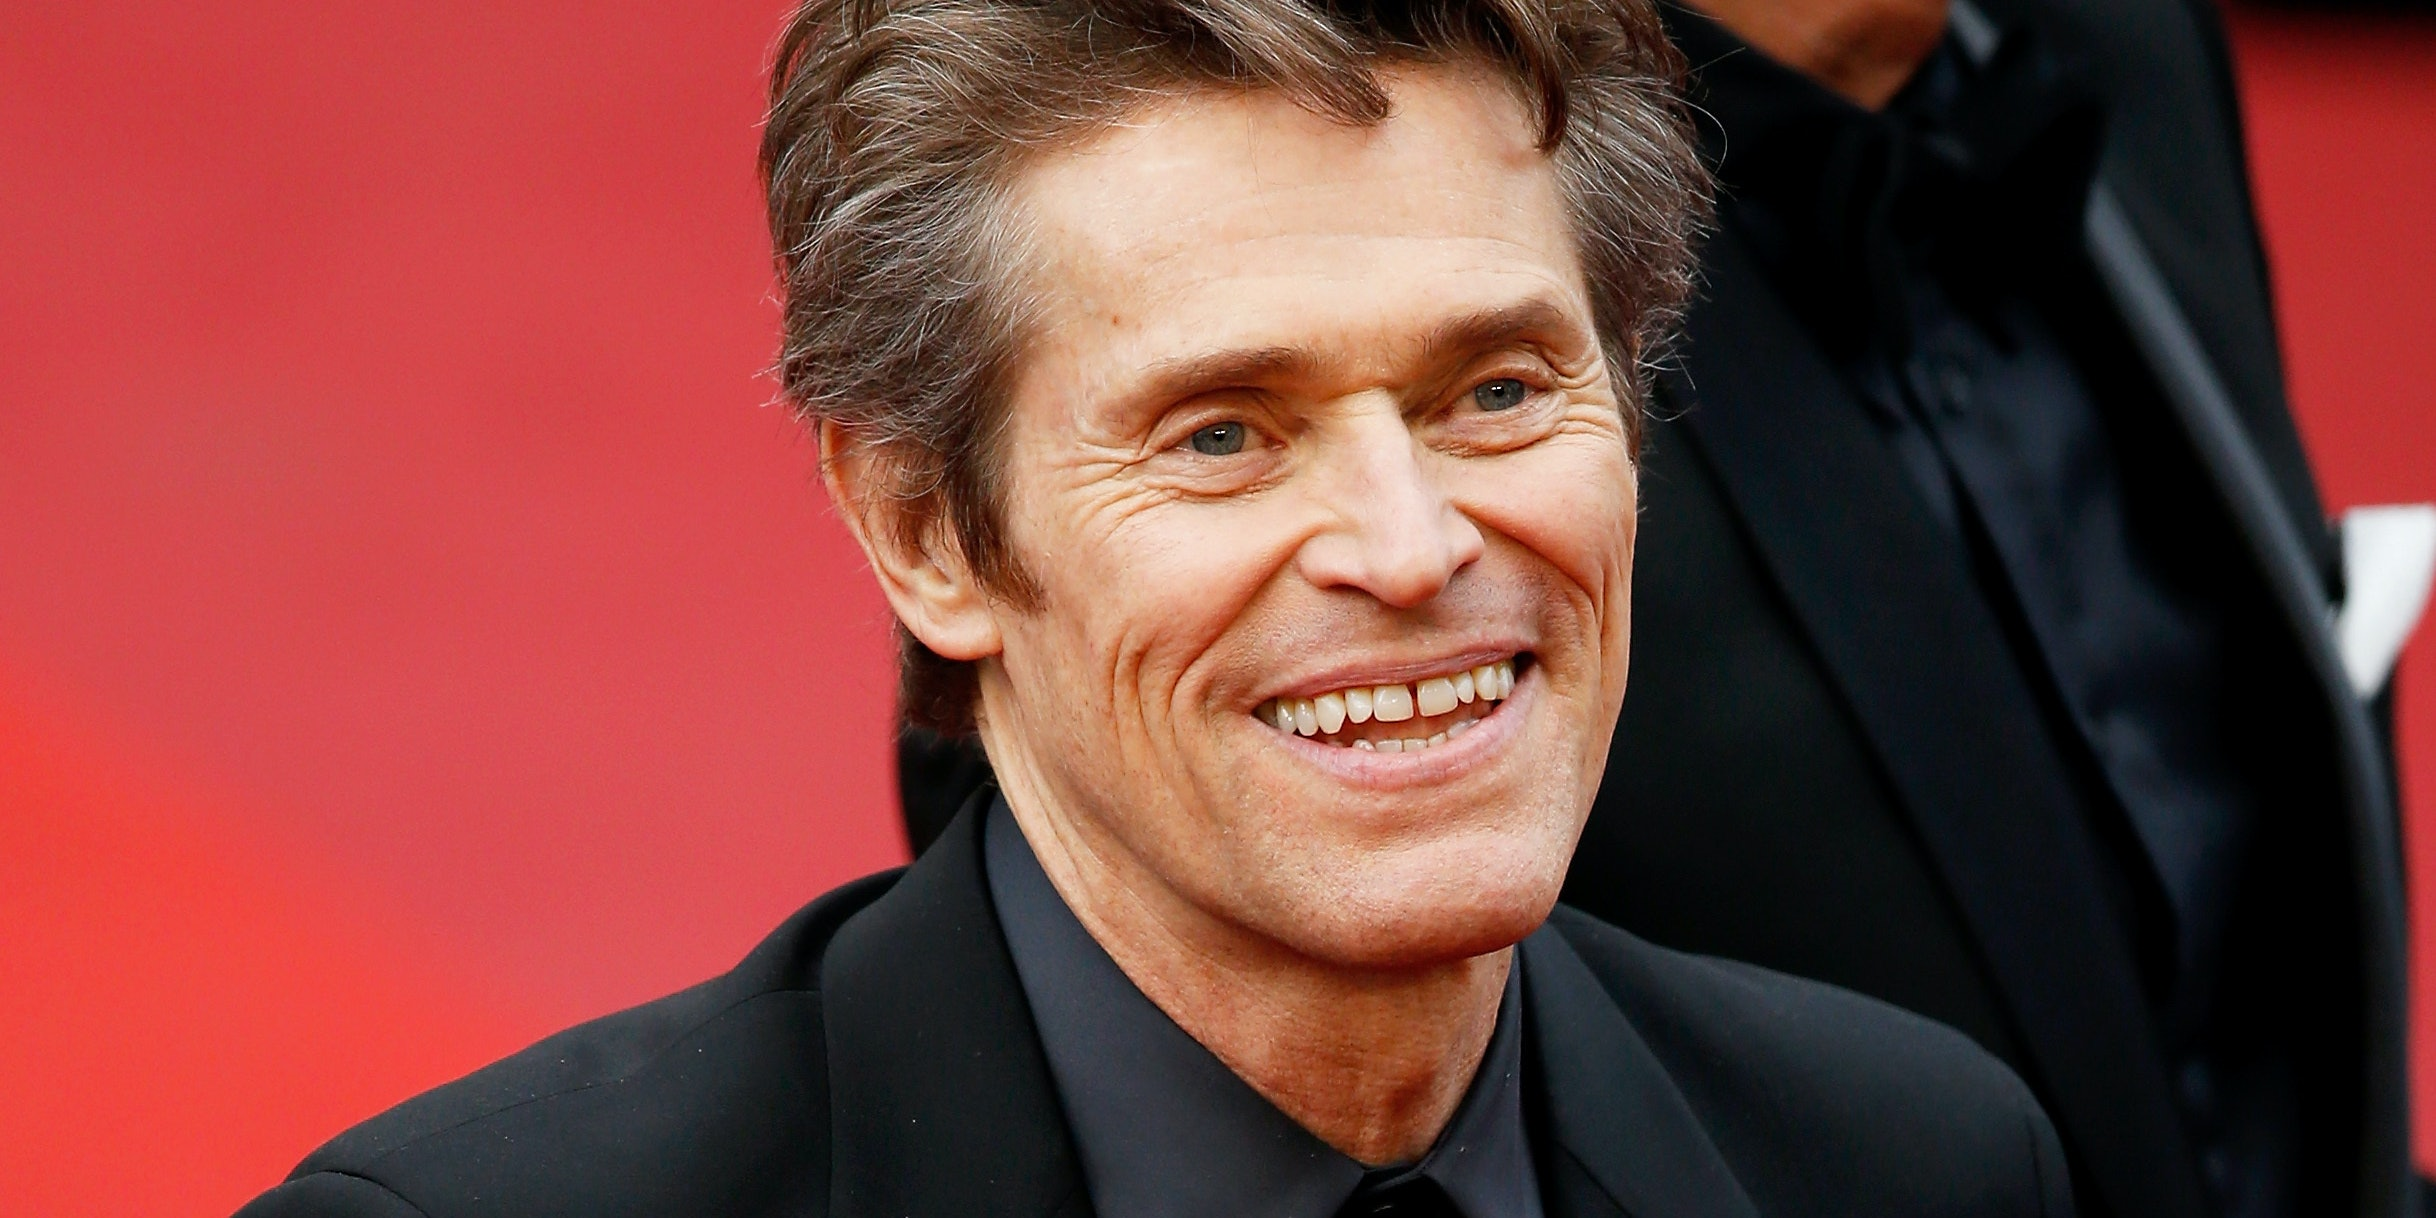 CANNES, FRANCE - MAY 22:  Actor Willem Dafoe attends the closing ceremony of the 69th annual Cannes Film Festival at the Palais des Festivals on May 22, 2016 in Cannes, France.  (Photo by Tristan Fewings/Getty Images)